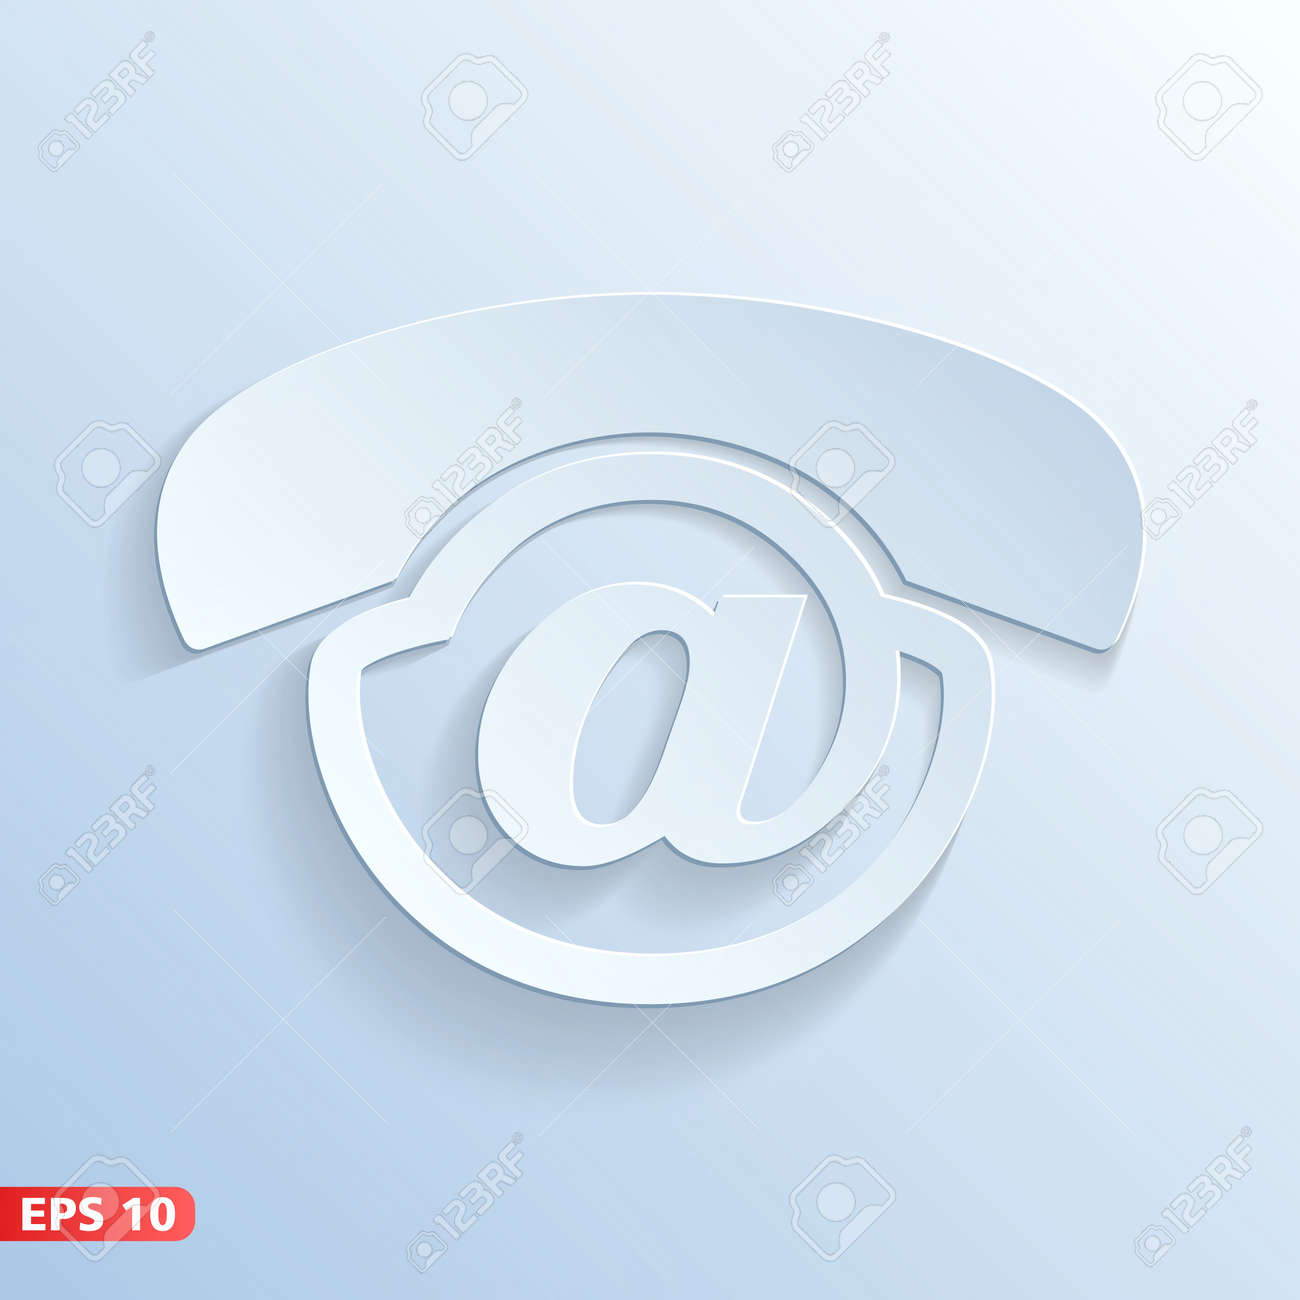 Contact us - phone email voicemail Stock Vector - 23767081